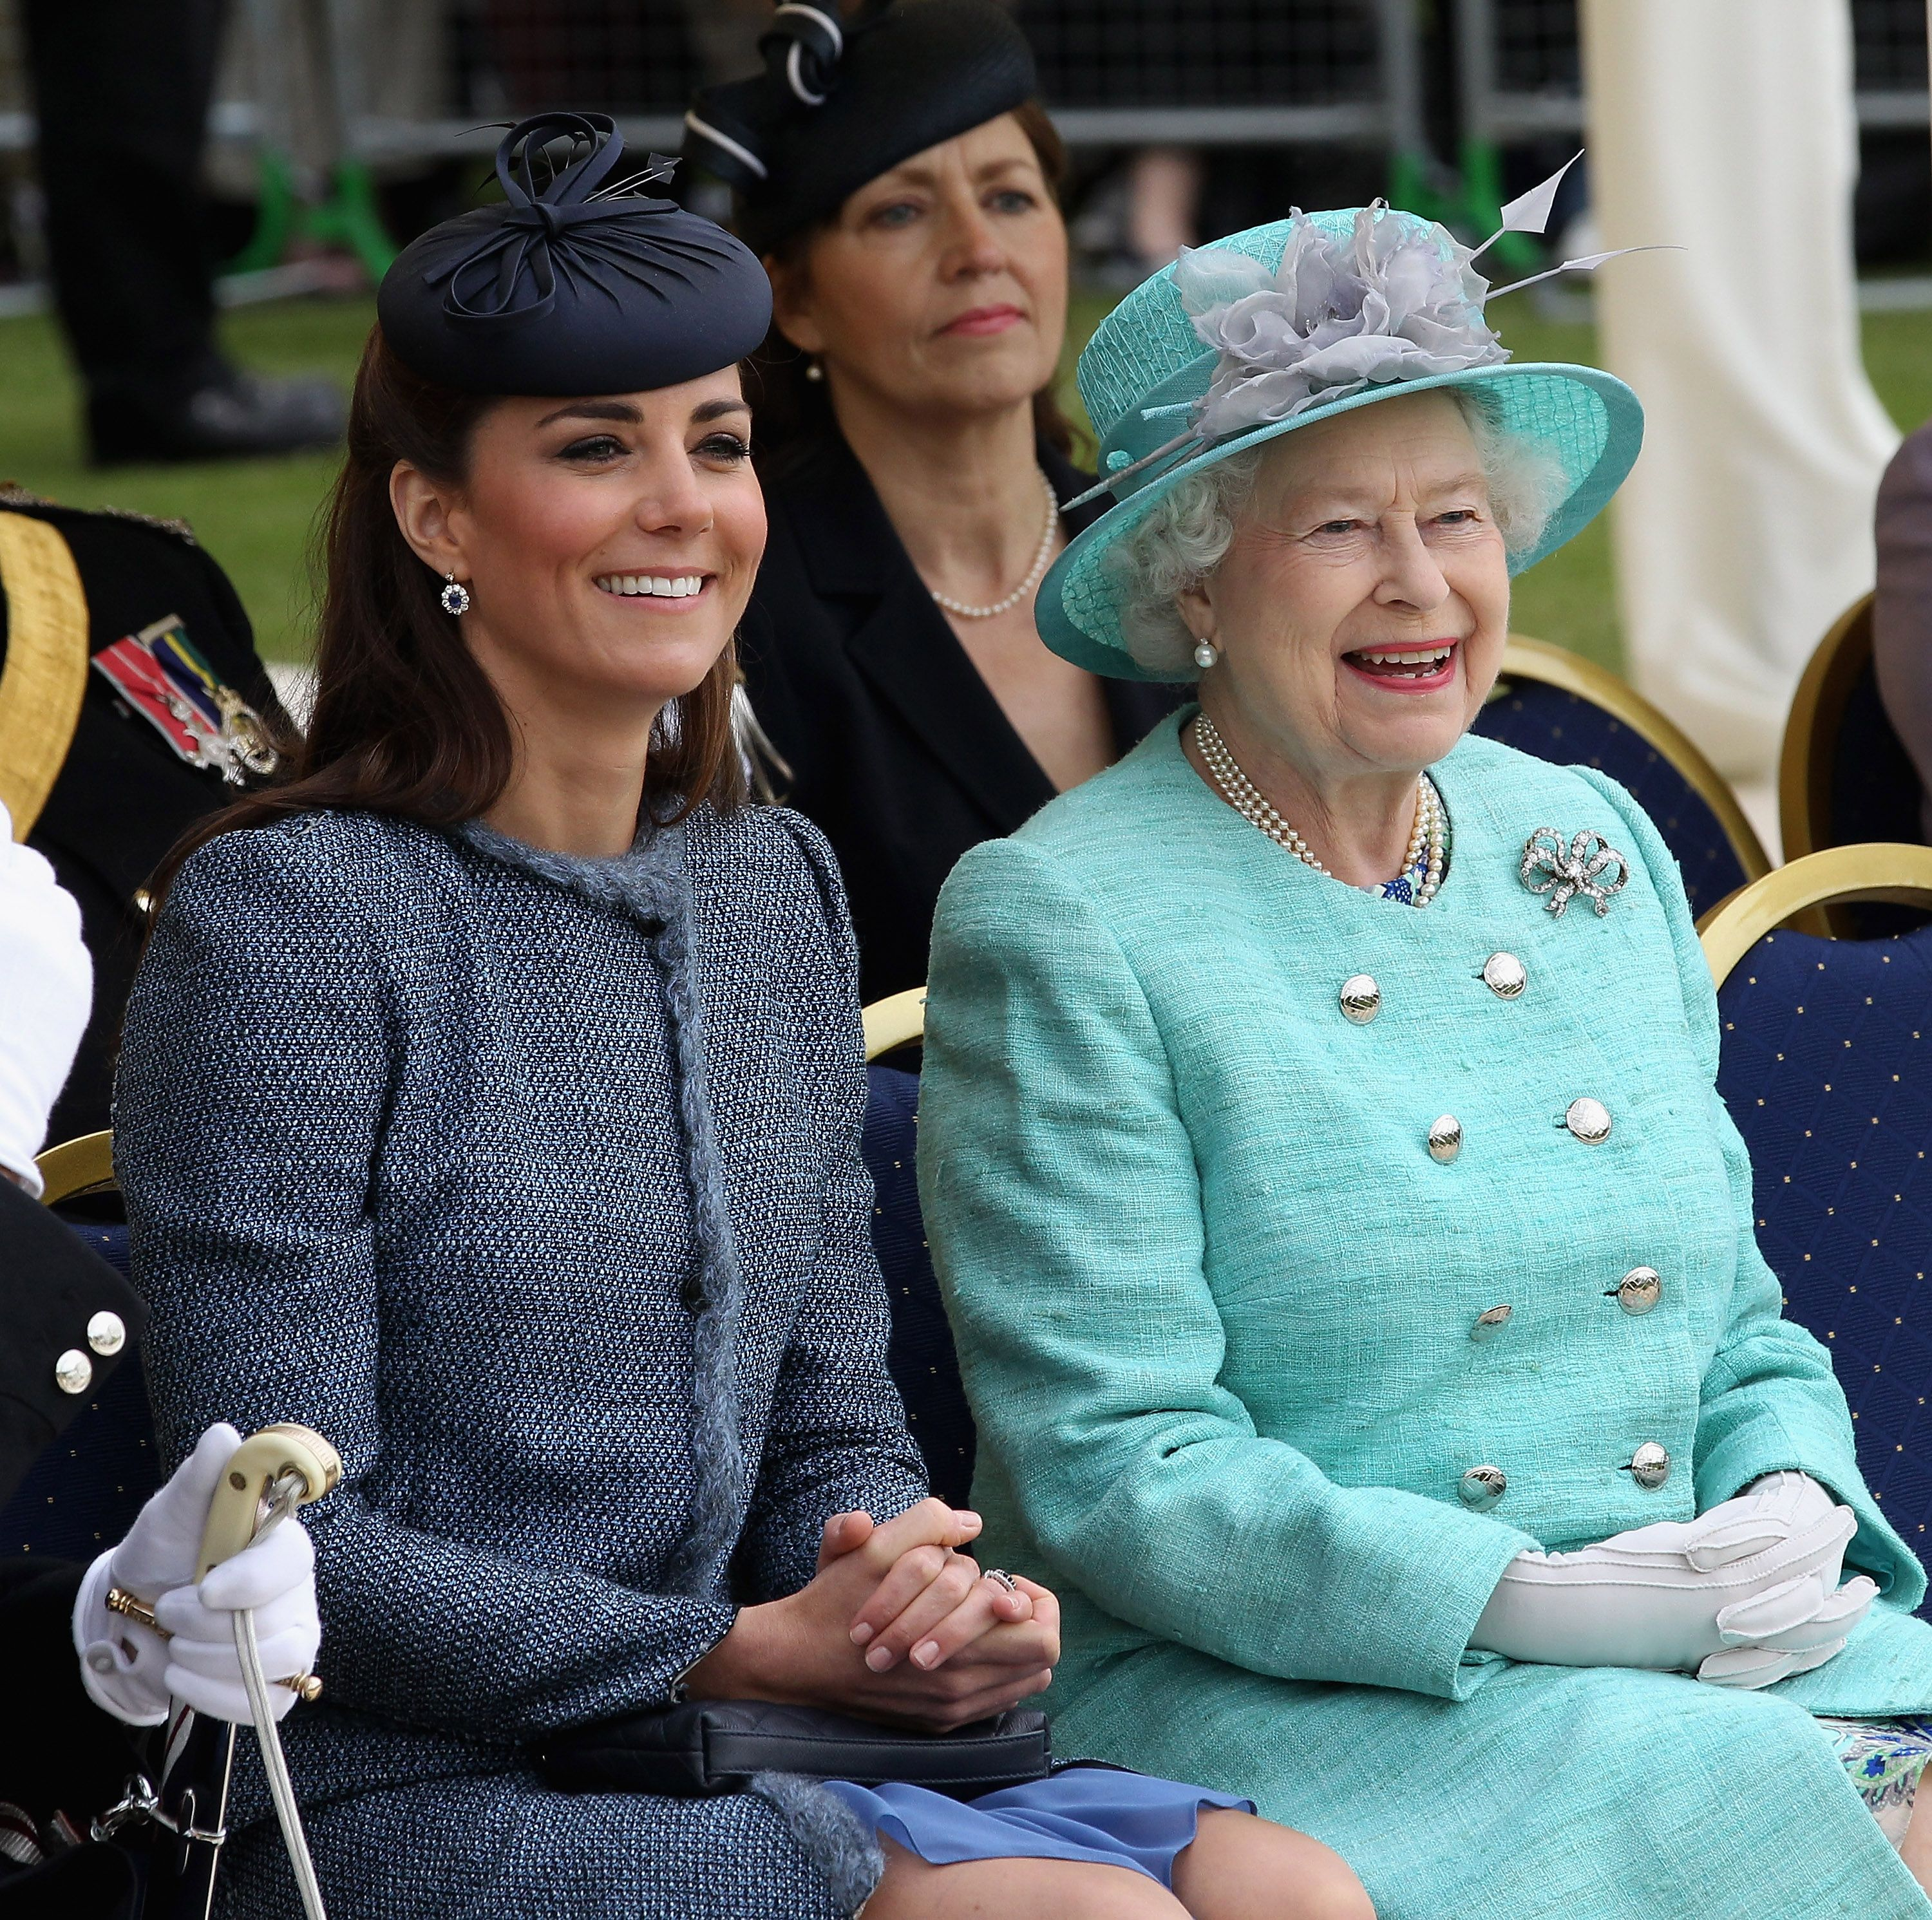 Catherine Middleton and Queen Elizabeth II smile as they visit Vernon Park during a Diamond Jubilee visit to Nottingham on June 13, 2012 in Nottingham, England.   Source: Getty Images